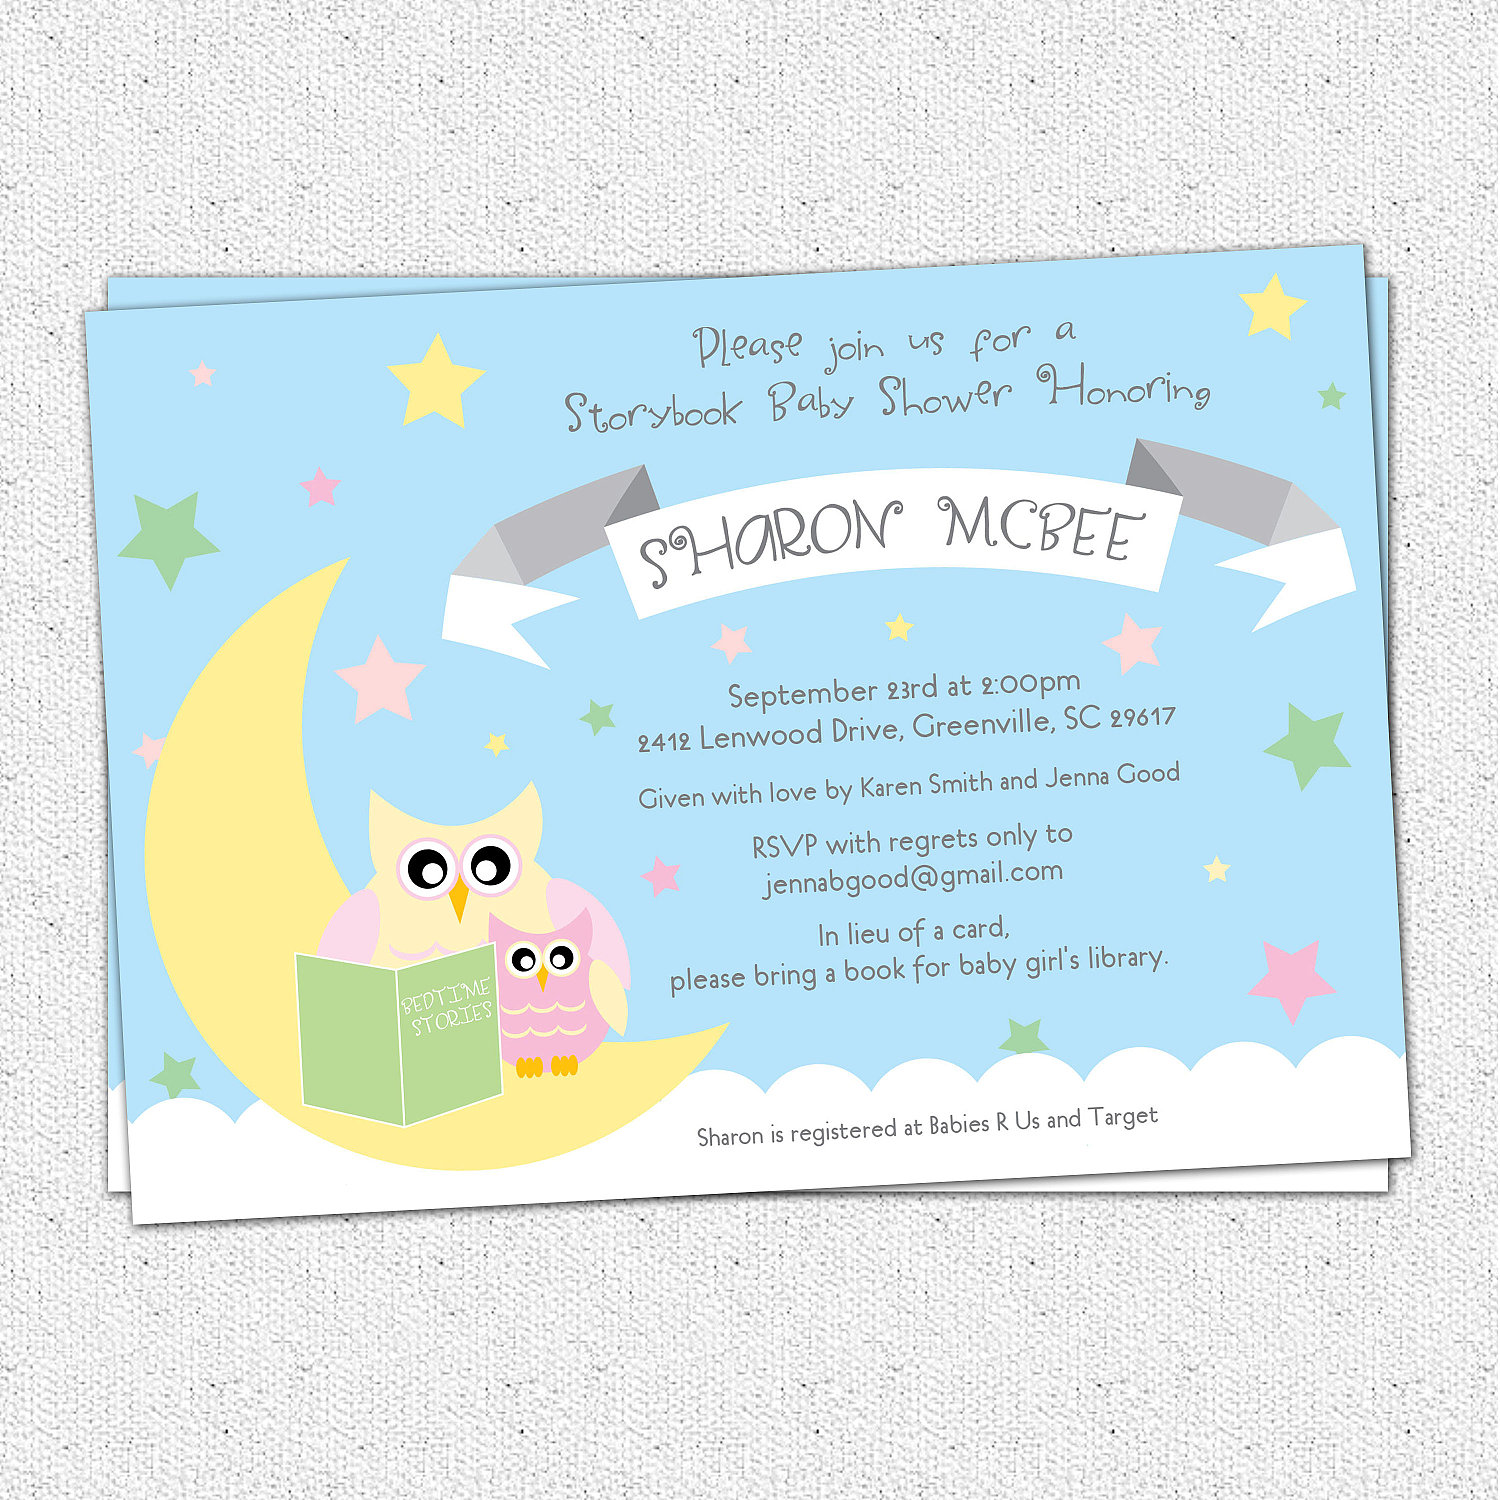 Baby shower invitations story book themed mom and baby owl moon baby shower invitations story book themed mom and baby owl moon and stars filmwisefo